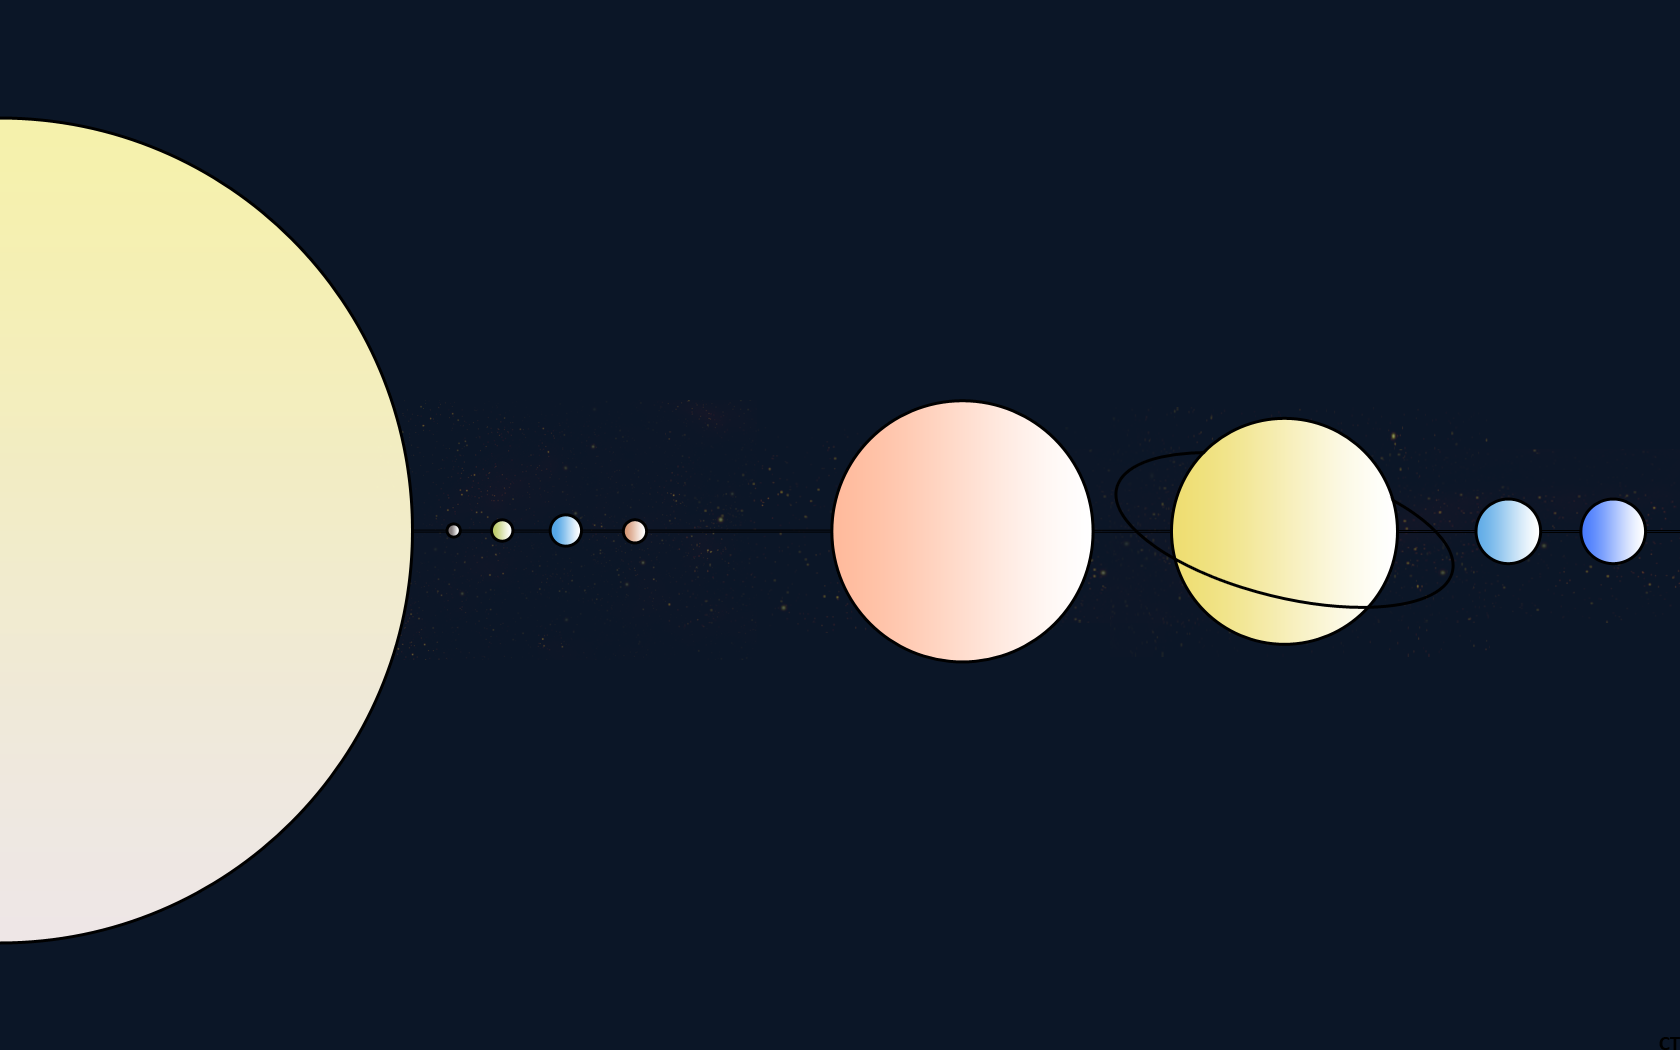 planets solar system wallpaper 1920x1200 - photo #27